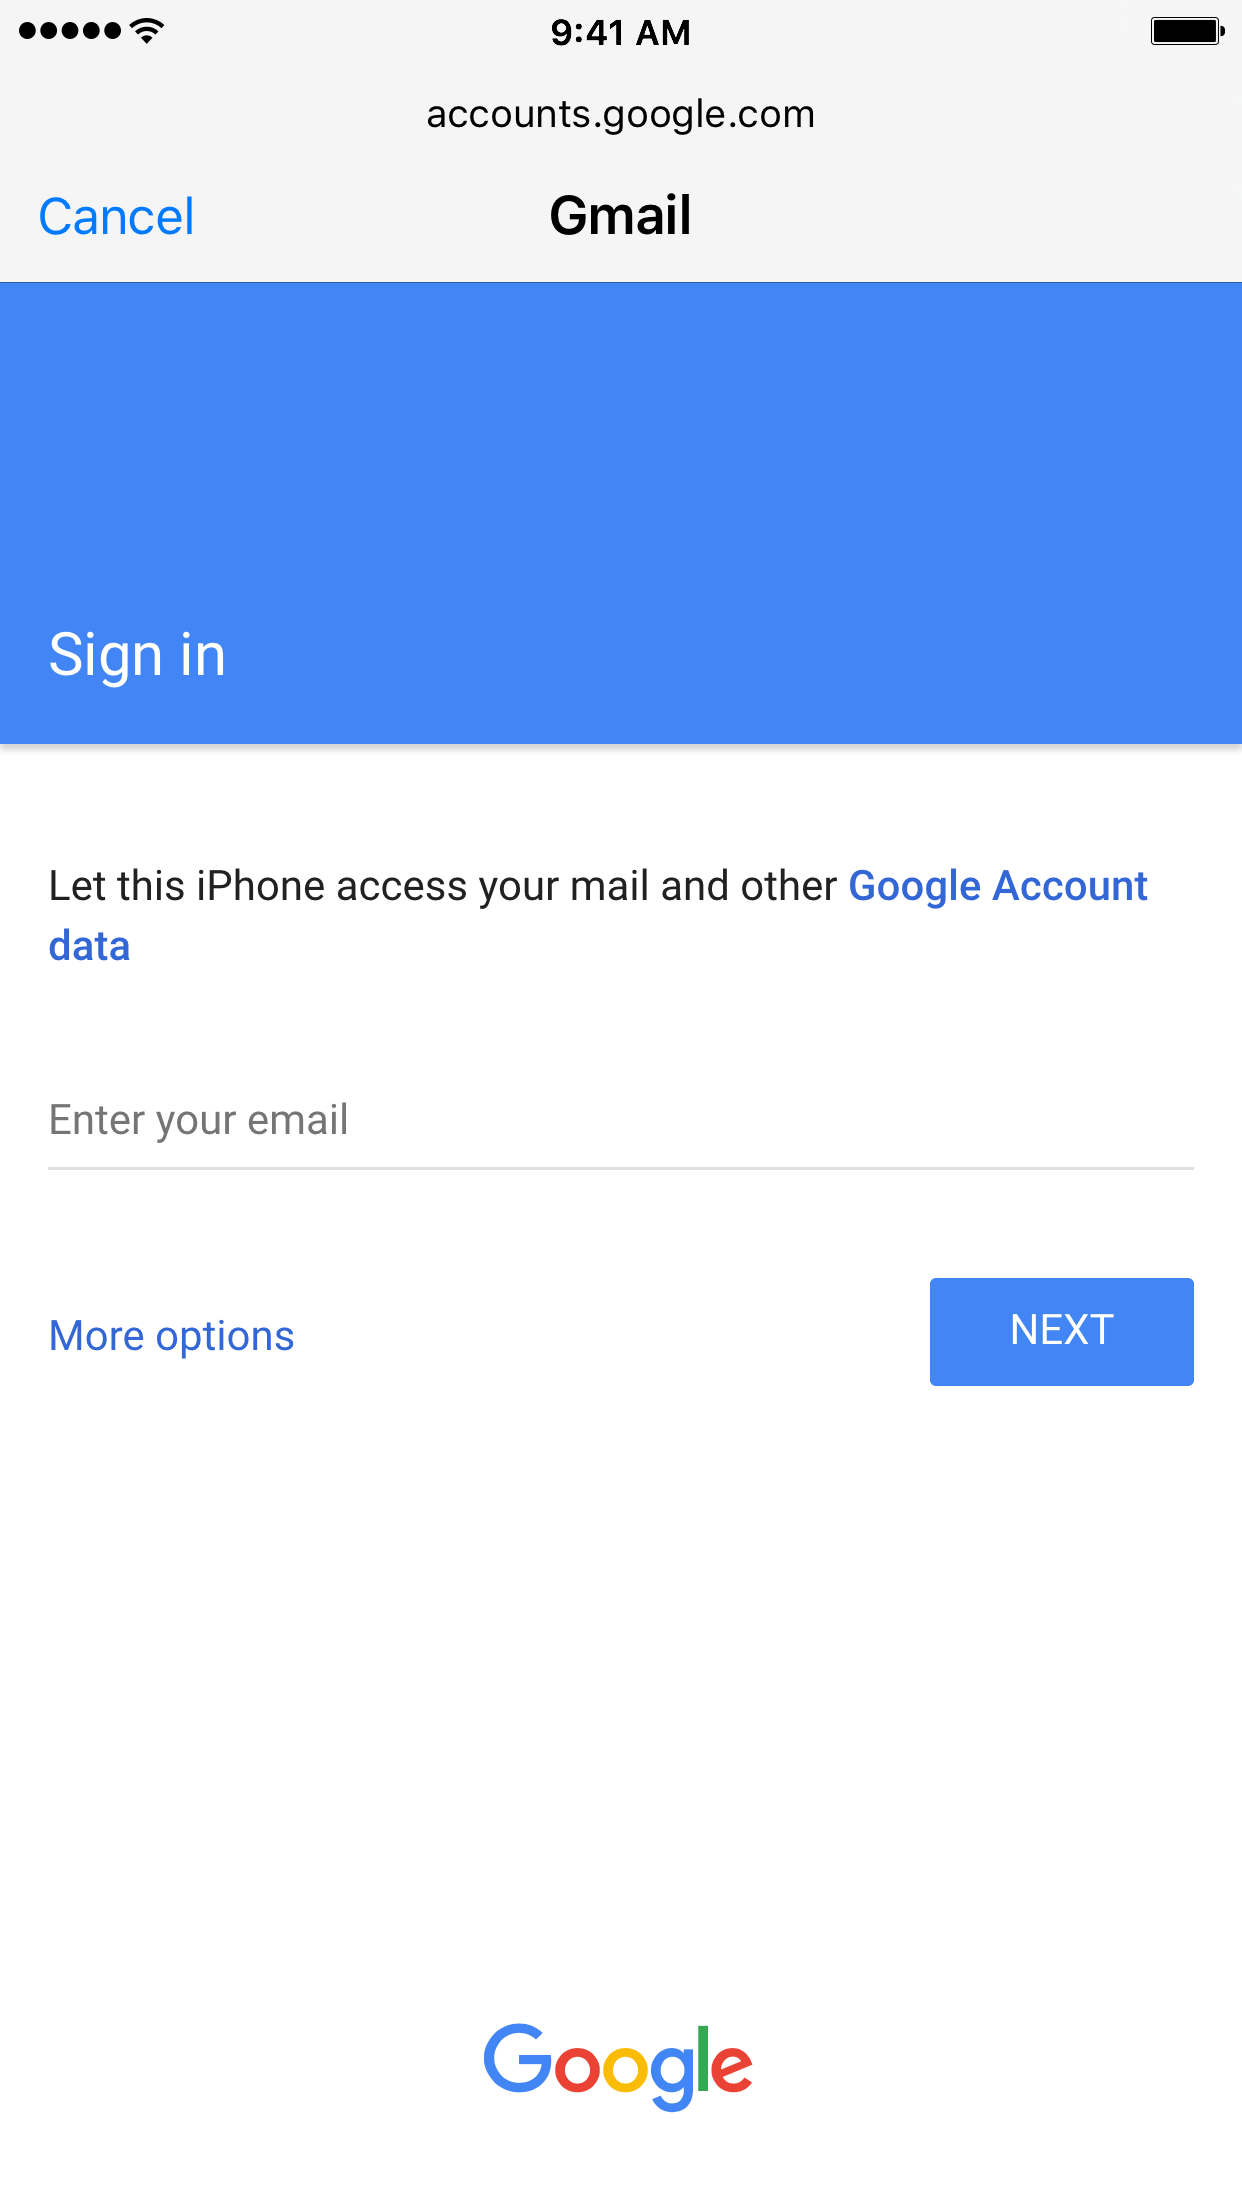 Sign in to Google Account on iOS in Settings Step 2